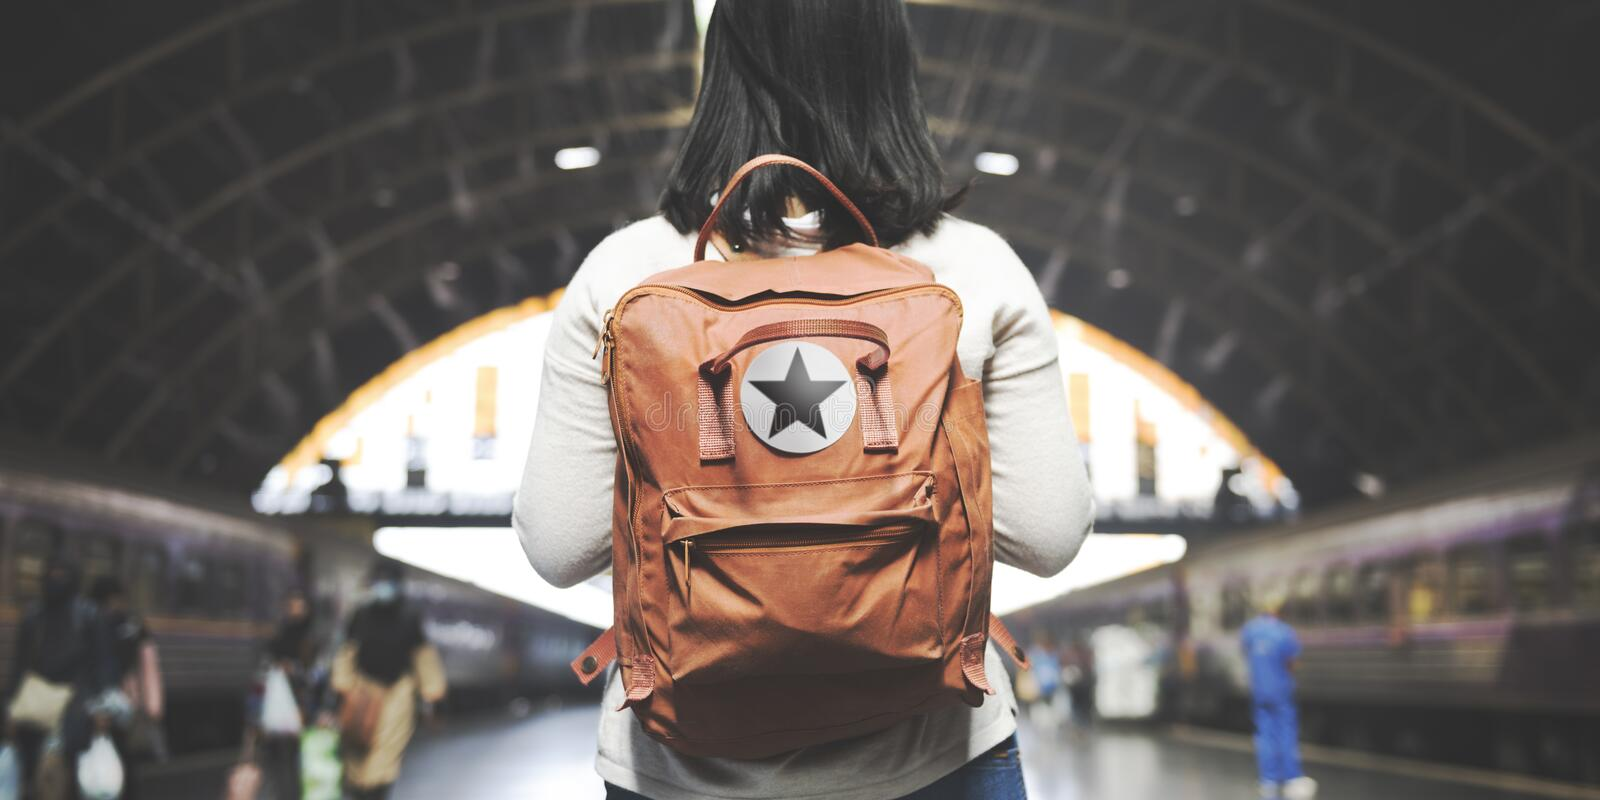 Asian Lady Traveler Backpack City Concept stock photos